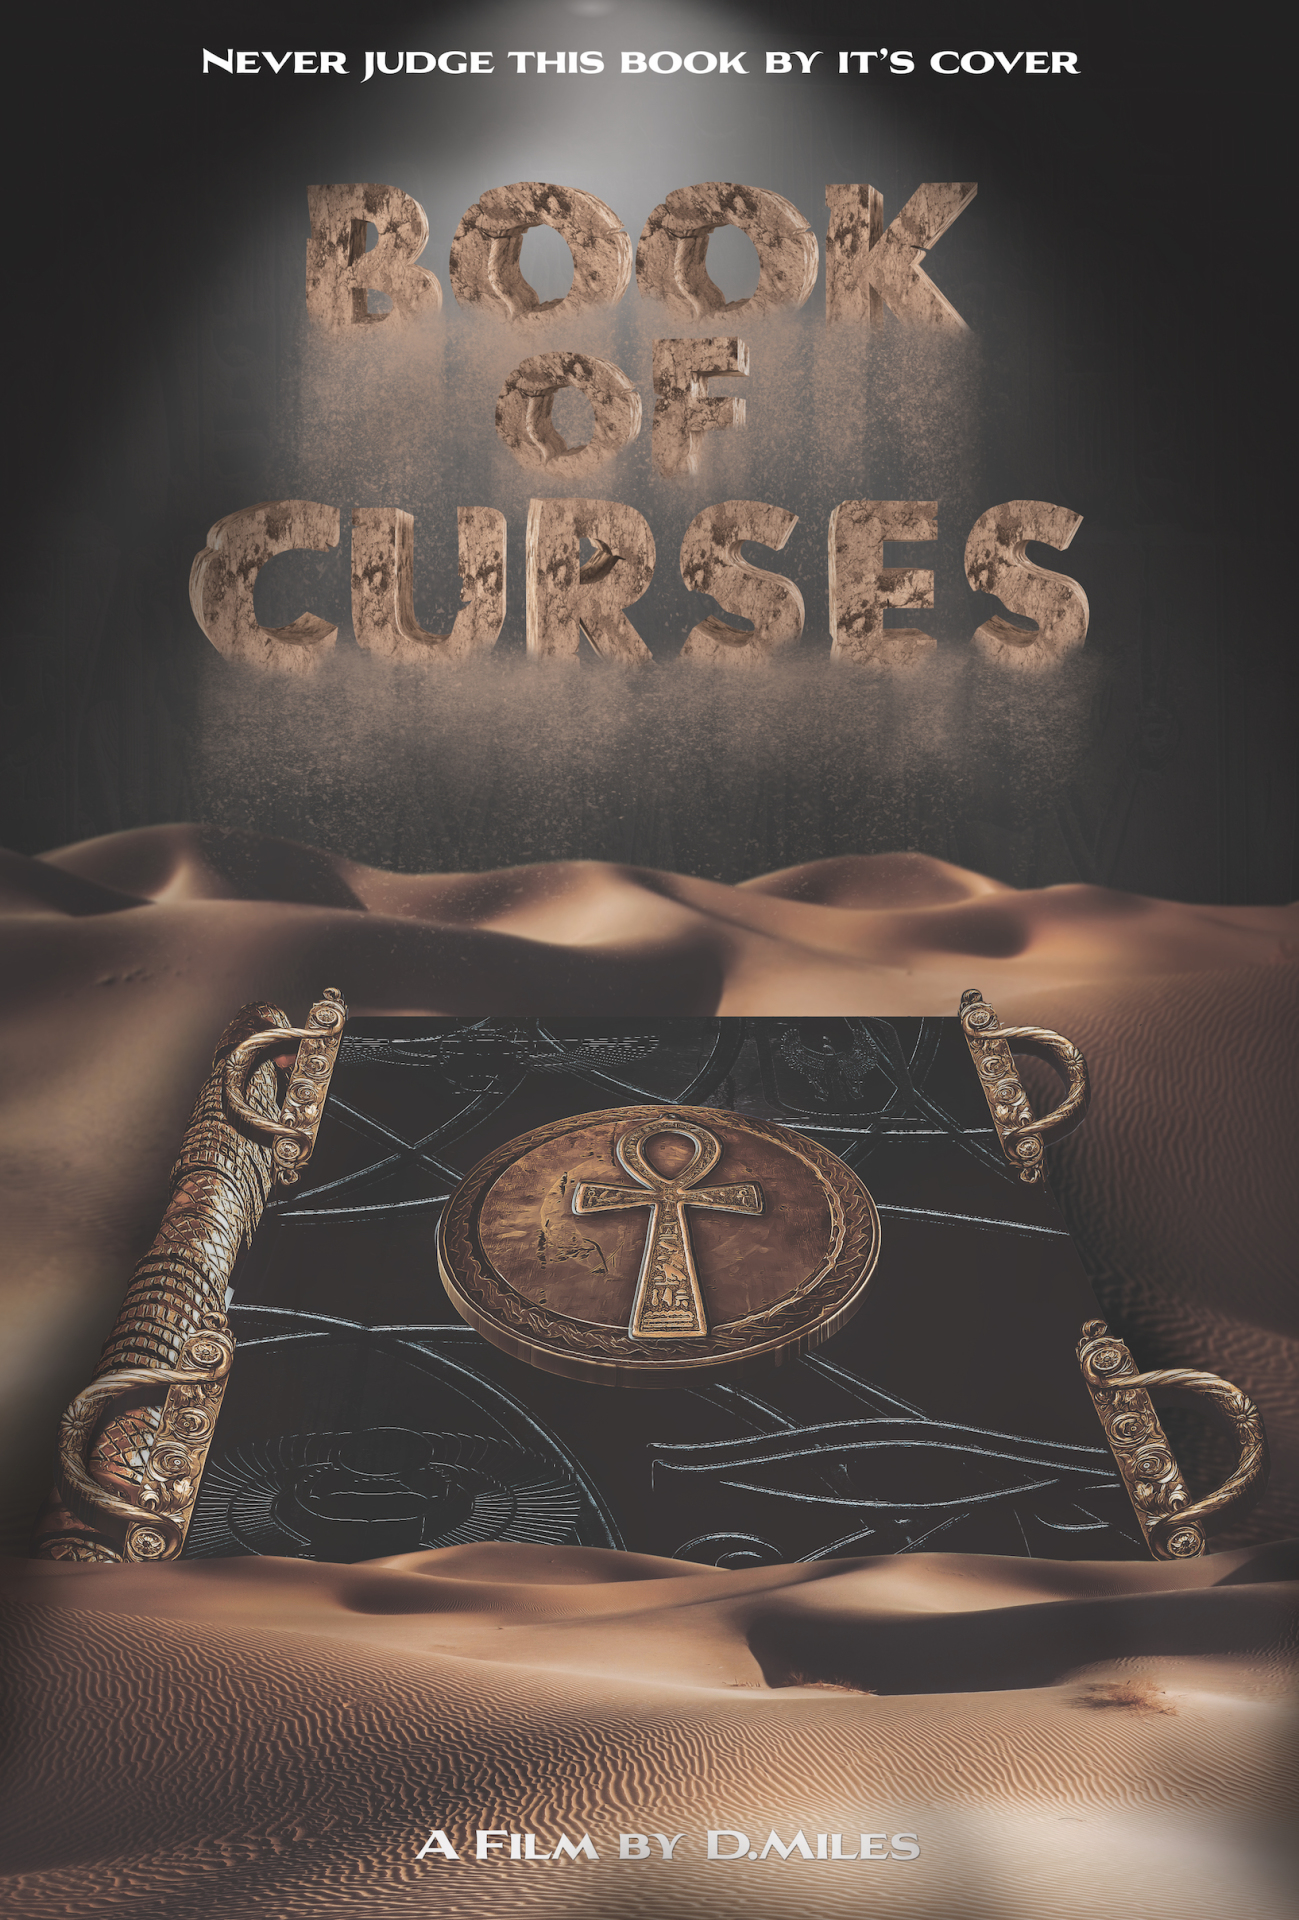 Book of Curses is an Horror/Thriller from Miles Vision Films.